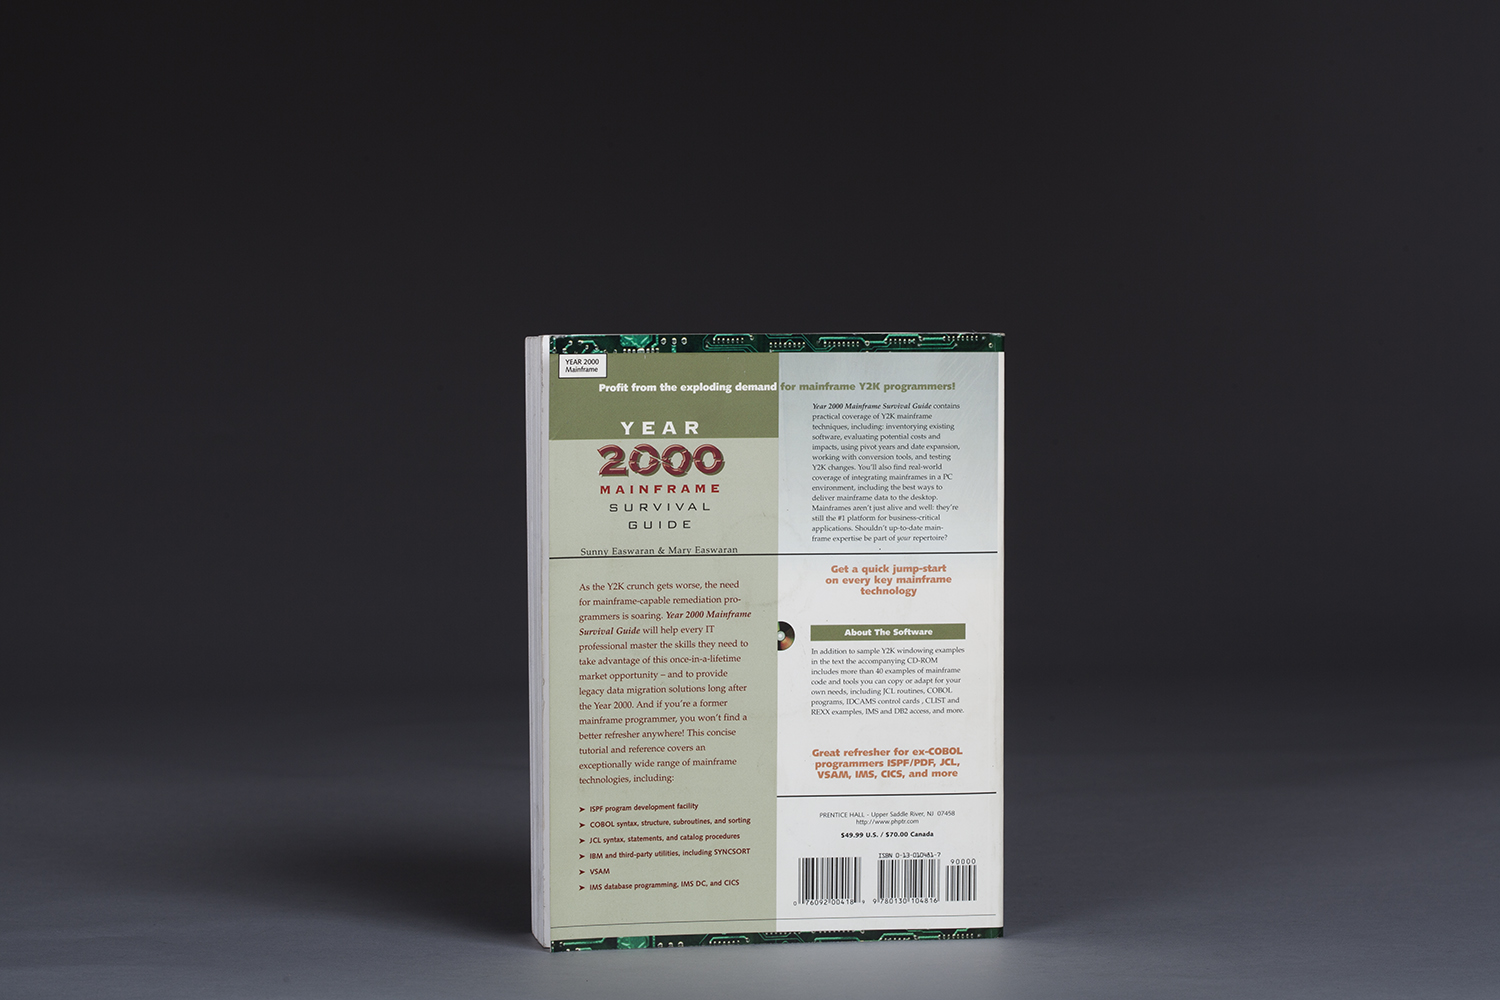 Year 2000 Mainframe Survival Guide - 0138 Back.jpg